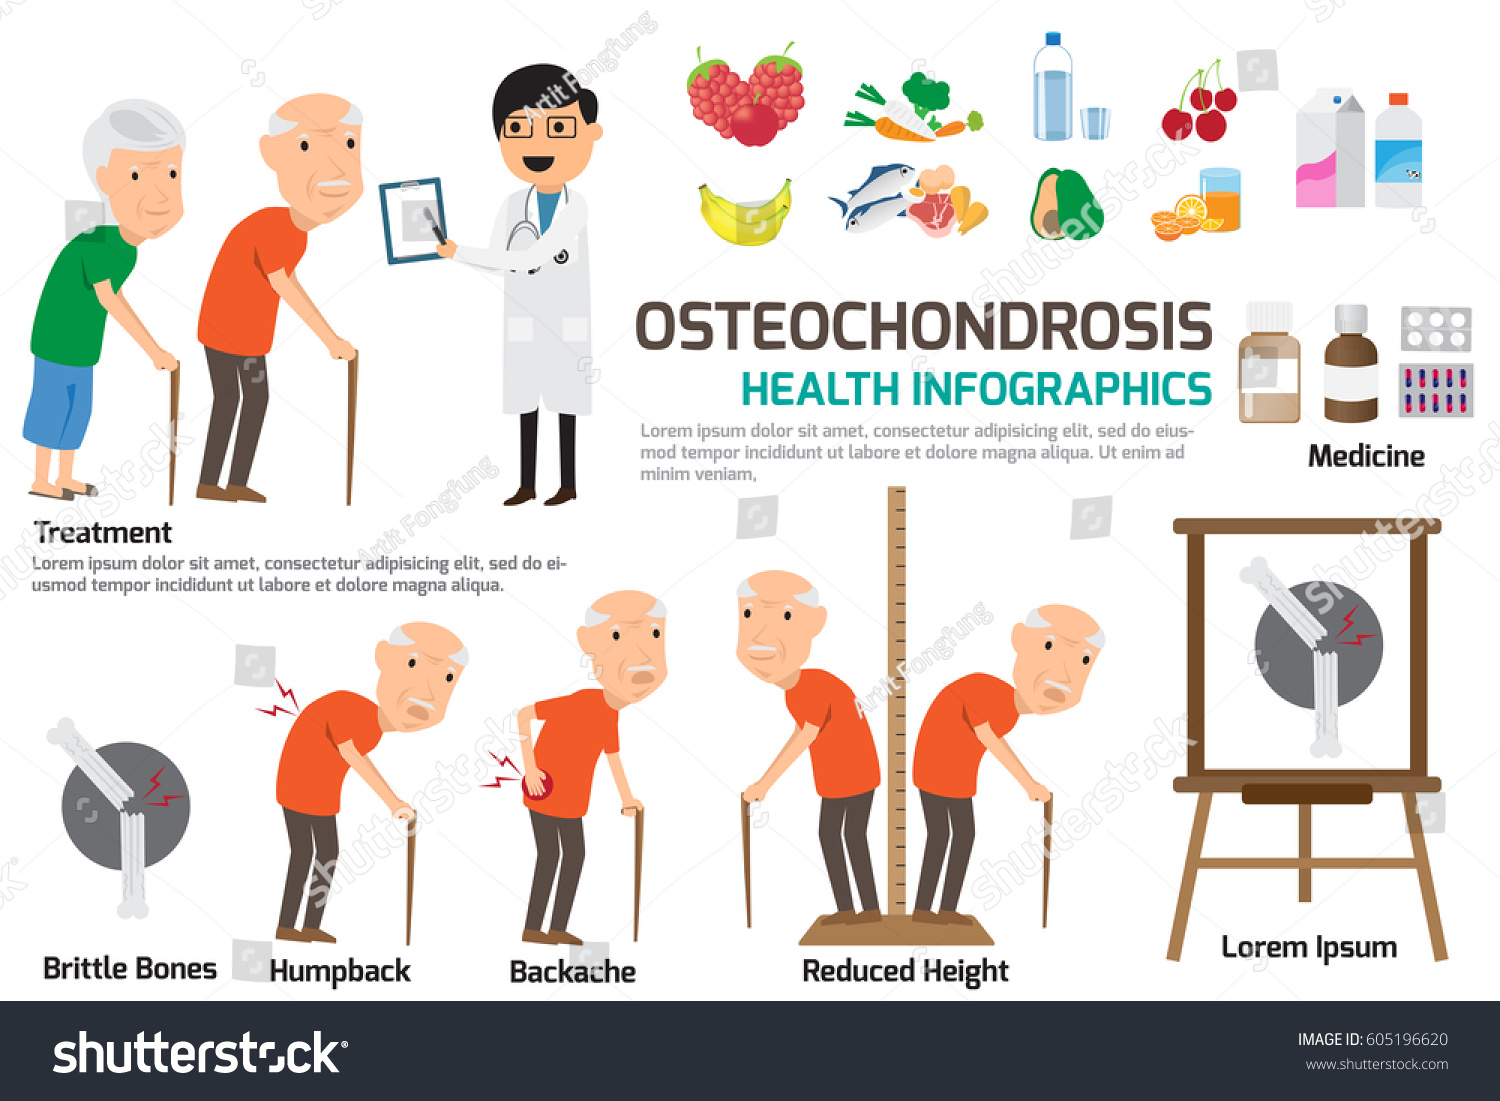 Headache with osteochondrosis: causes, symptoms and treatment. How to relieve the headache with cervical osteochondrosis